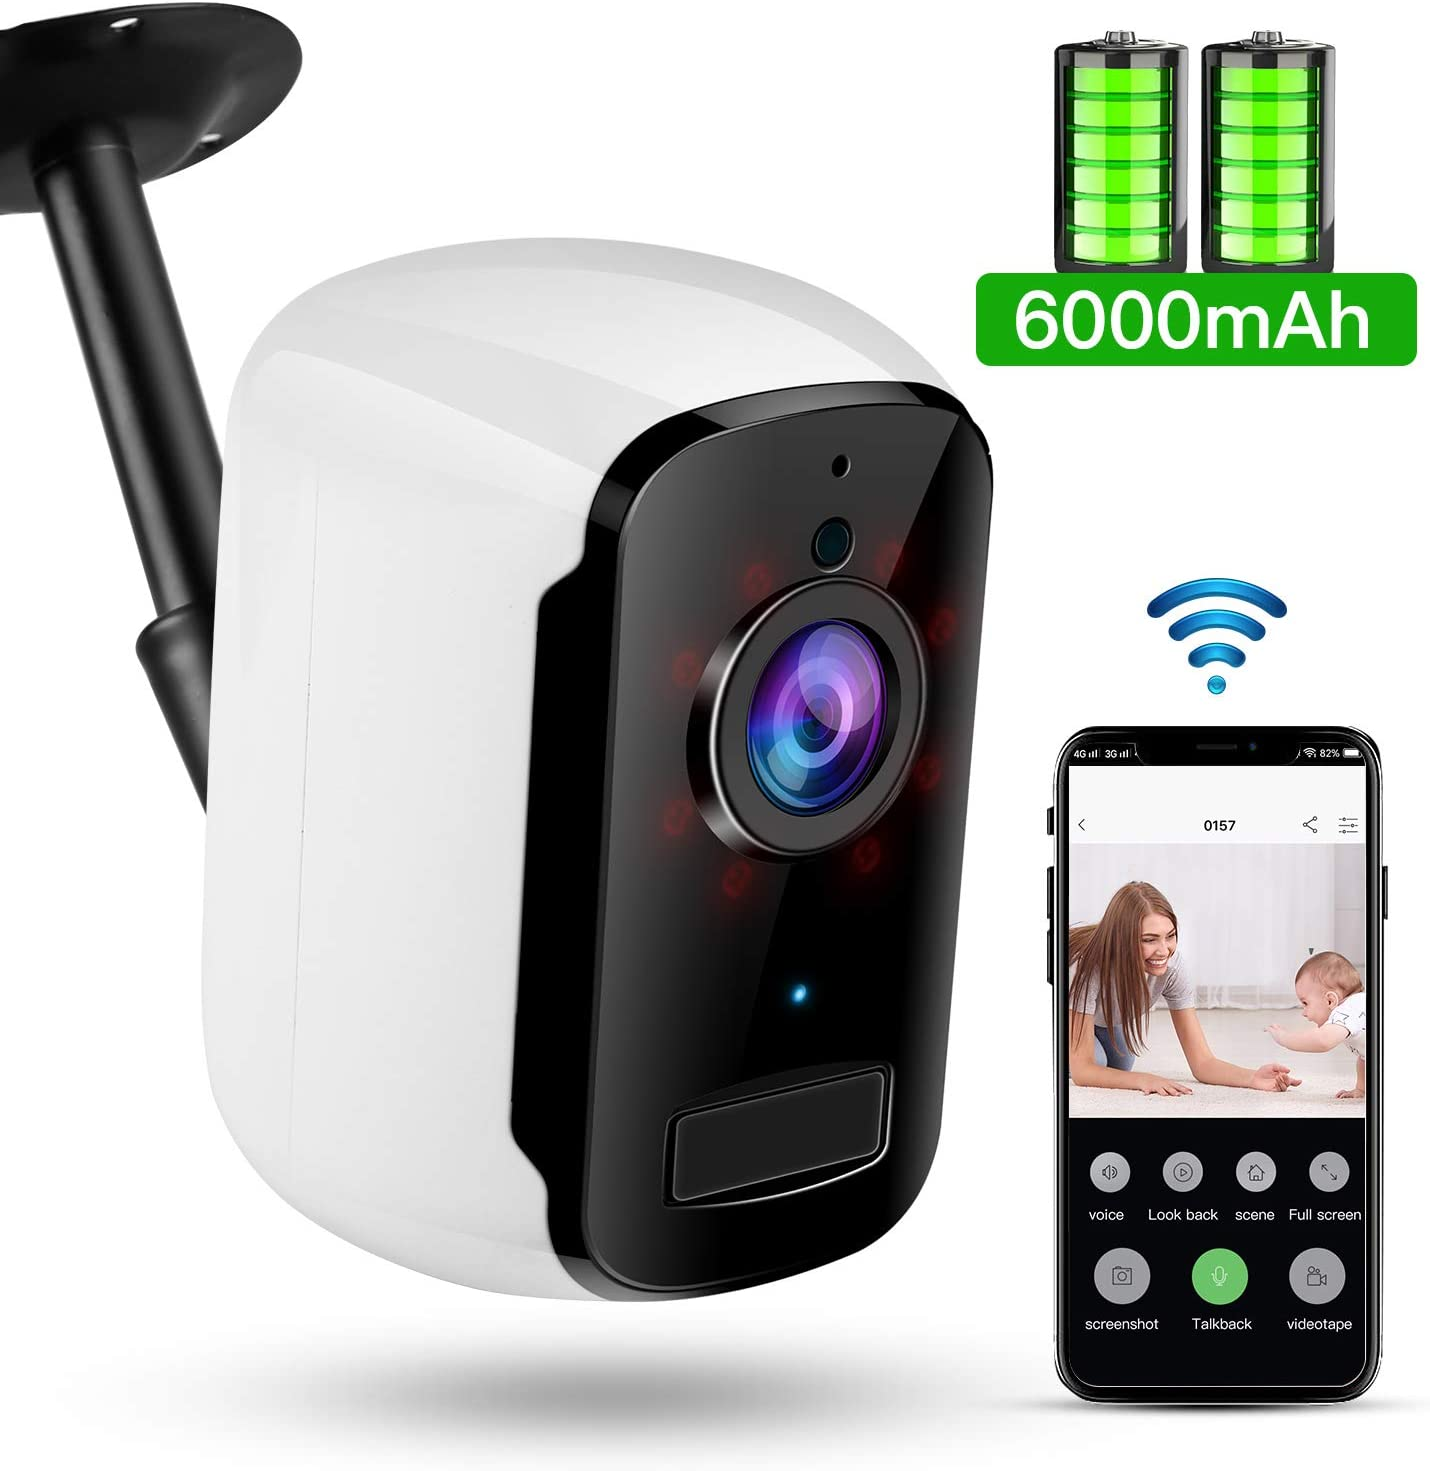 WiFi Battery Powered Camera, TOMLOV 32GB 1080P Wireless Home Security Camera with Night Vision, Two-Way Audio,6000mAh Battery, App Remote, Motion Detection, IP65 Waterproof for Indoor, Outdoor Eaves